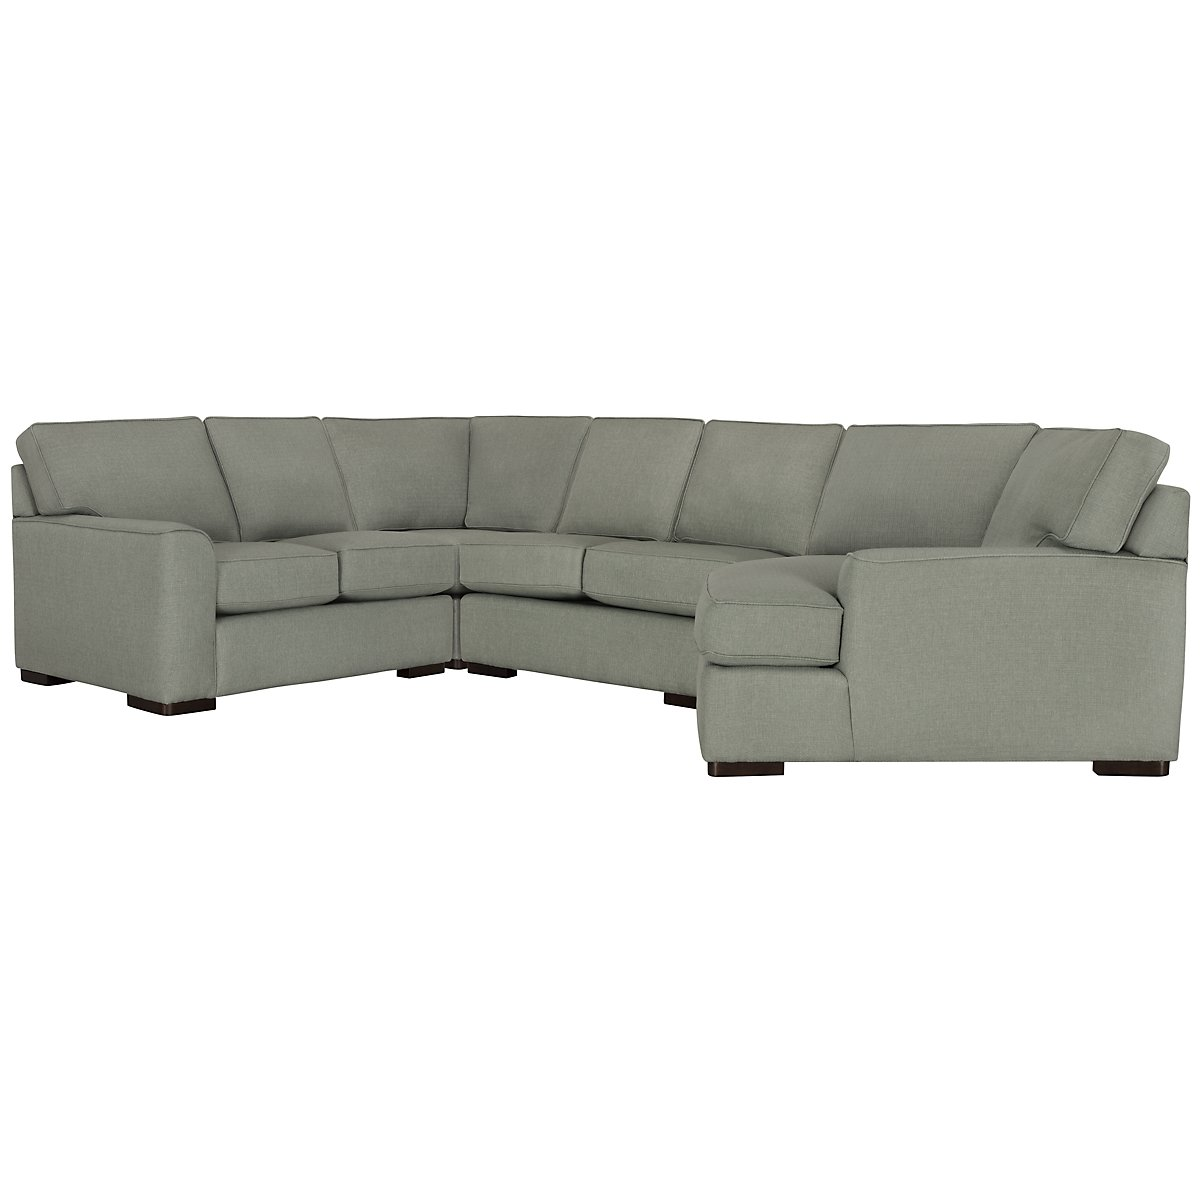 City furniture austin green fabric small right cuddler for Small sectional sofa with cuddler